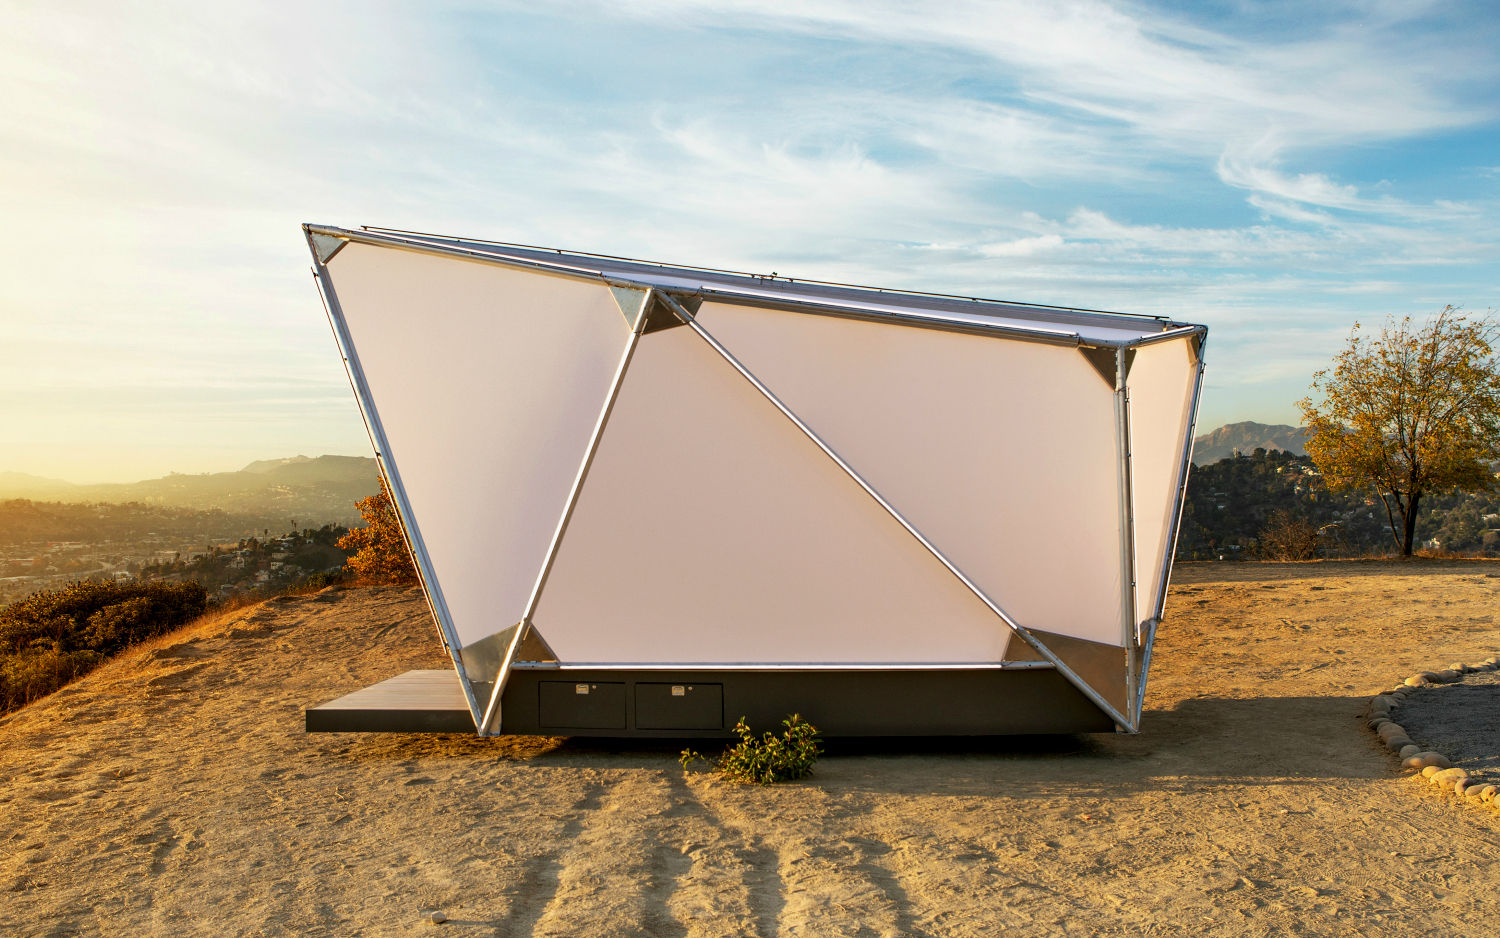 Jupe Portable Shelters